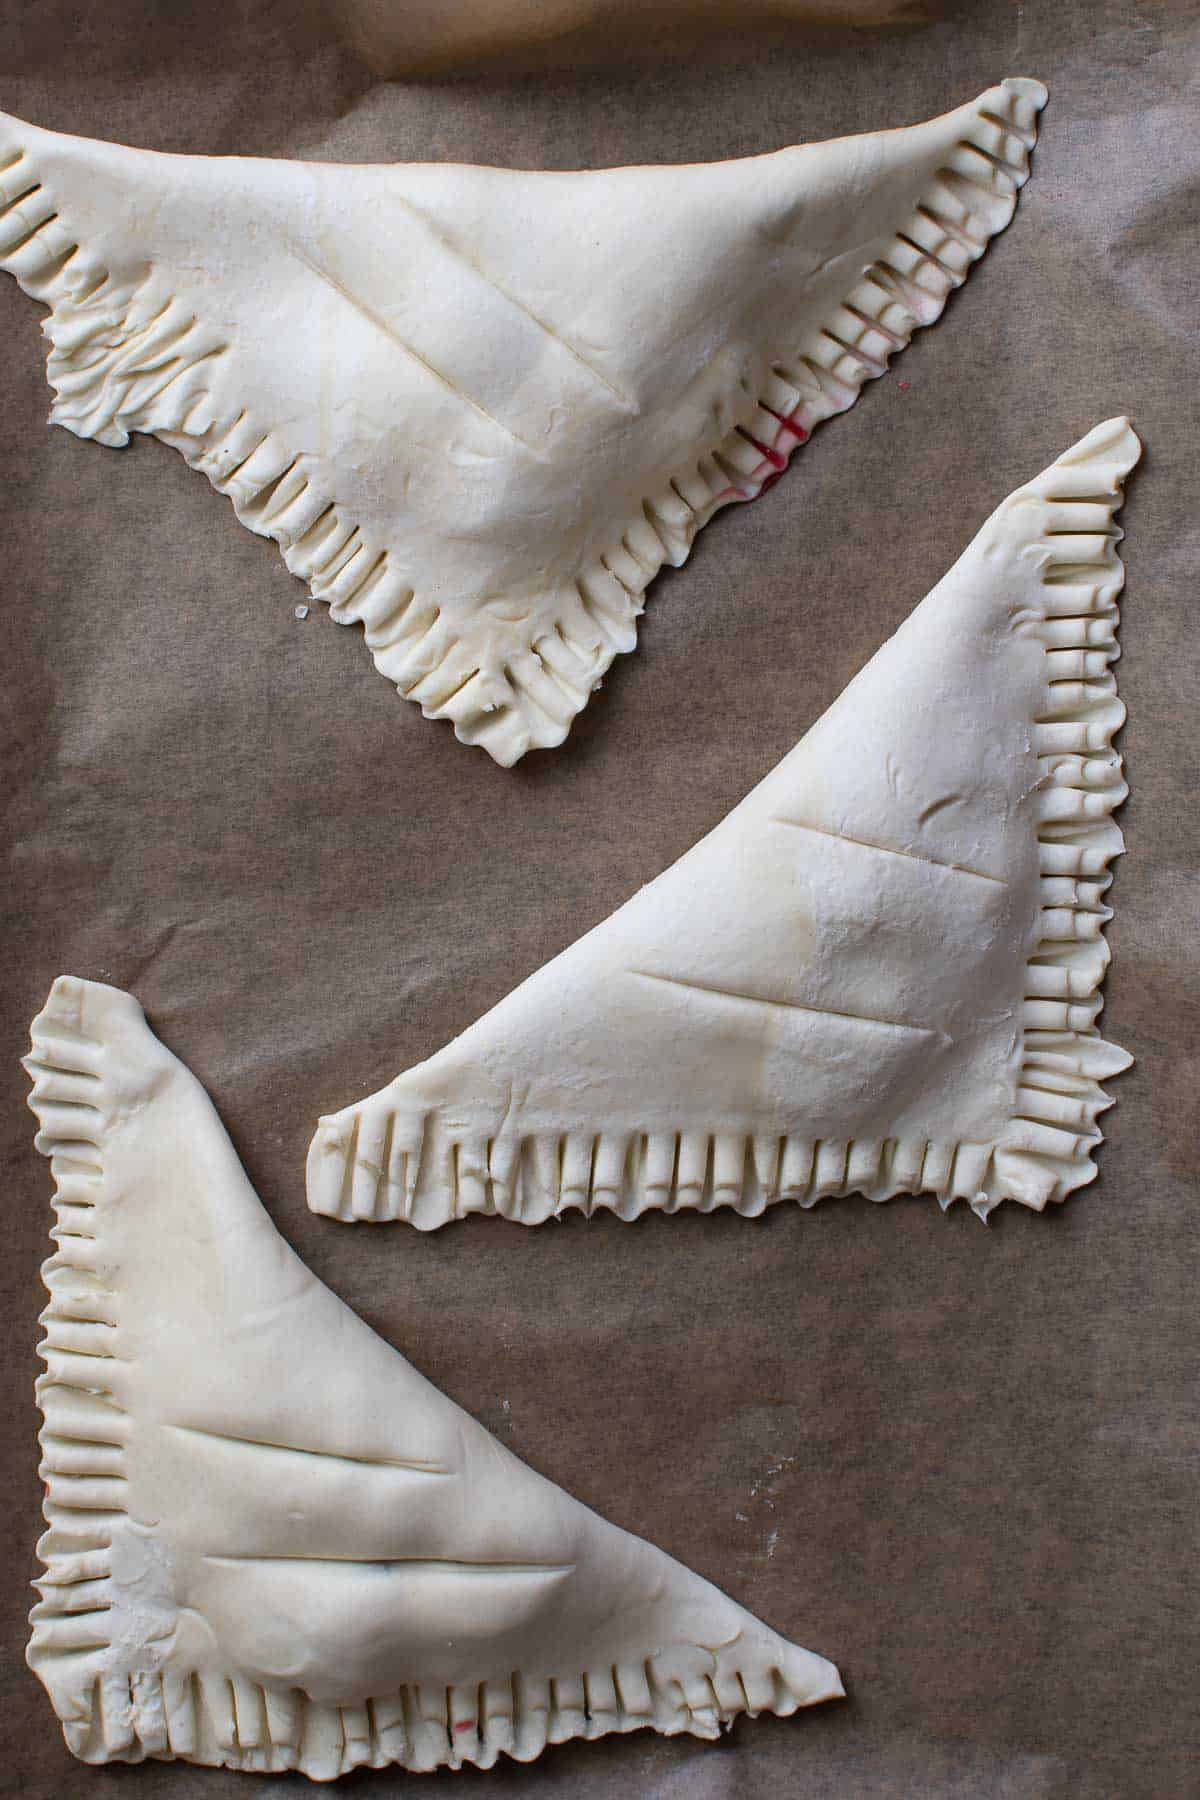 Uncooked turnovers on a baking sheet.